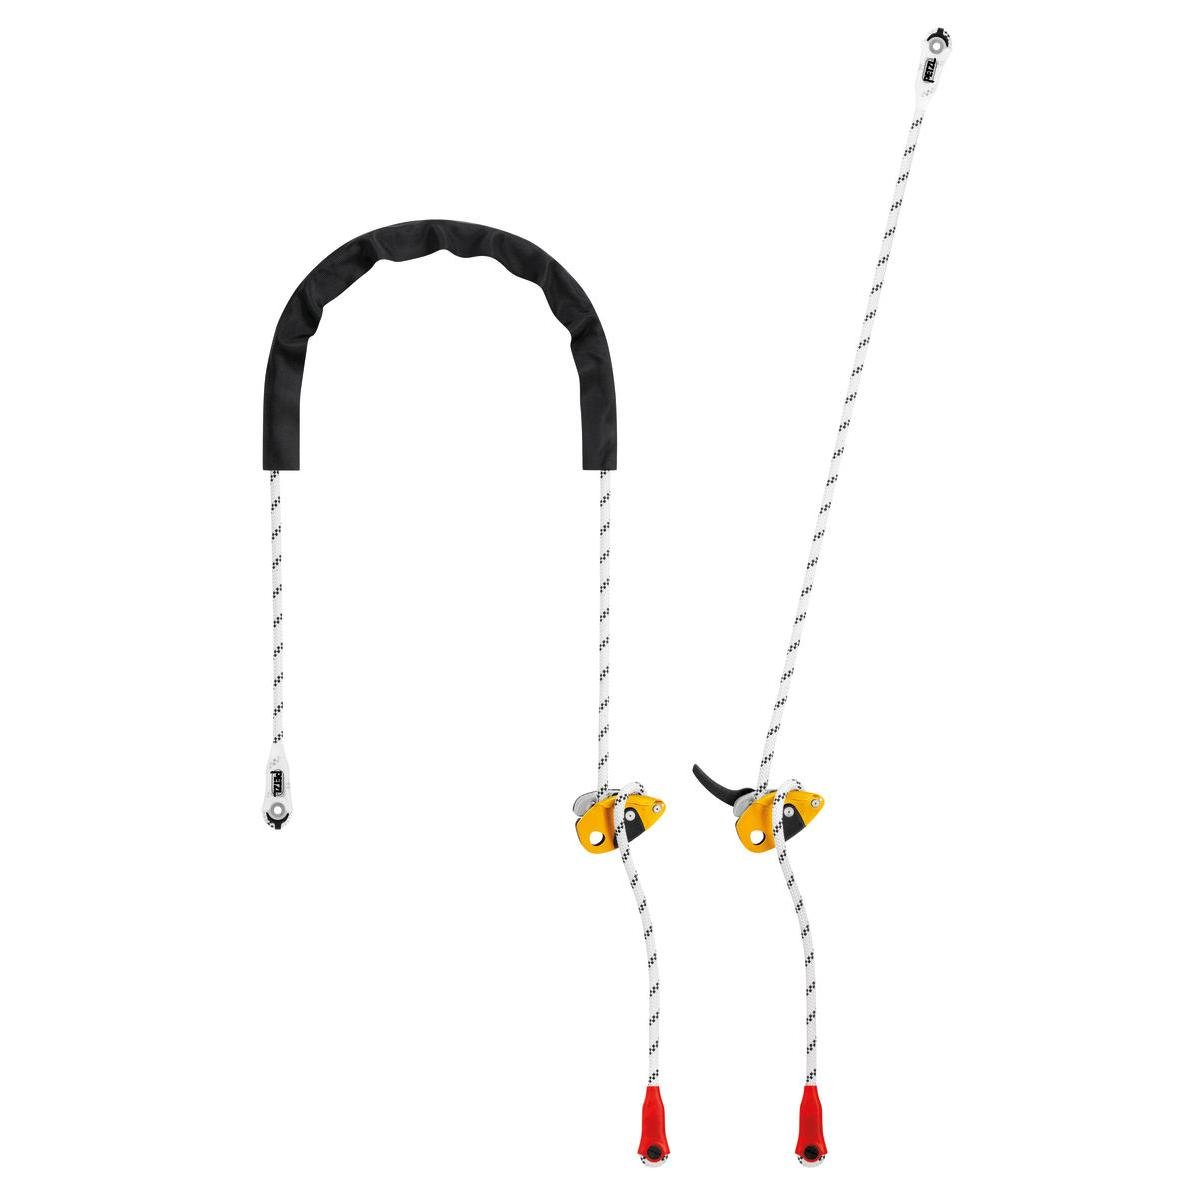 PETZL Grillon Positioning Lanyard 4m by PETZL (Image #1)